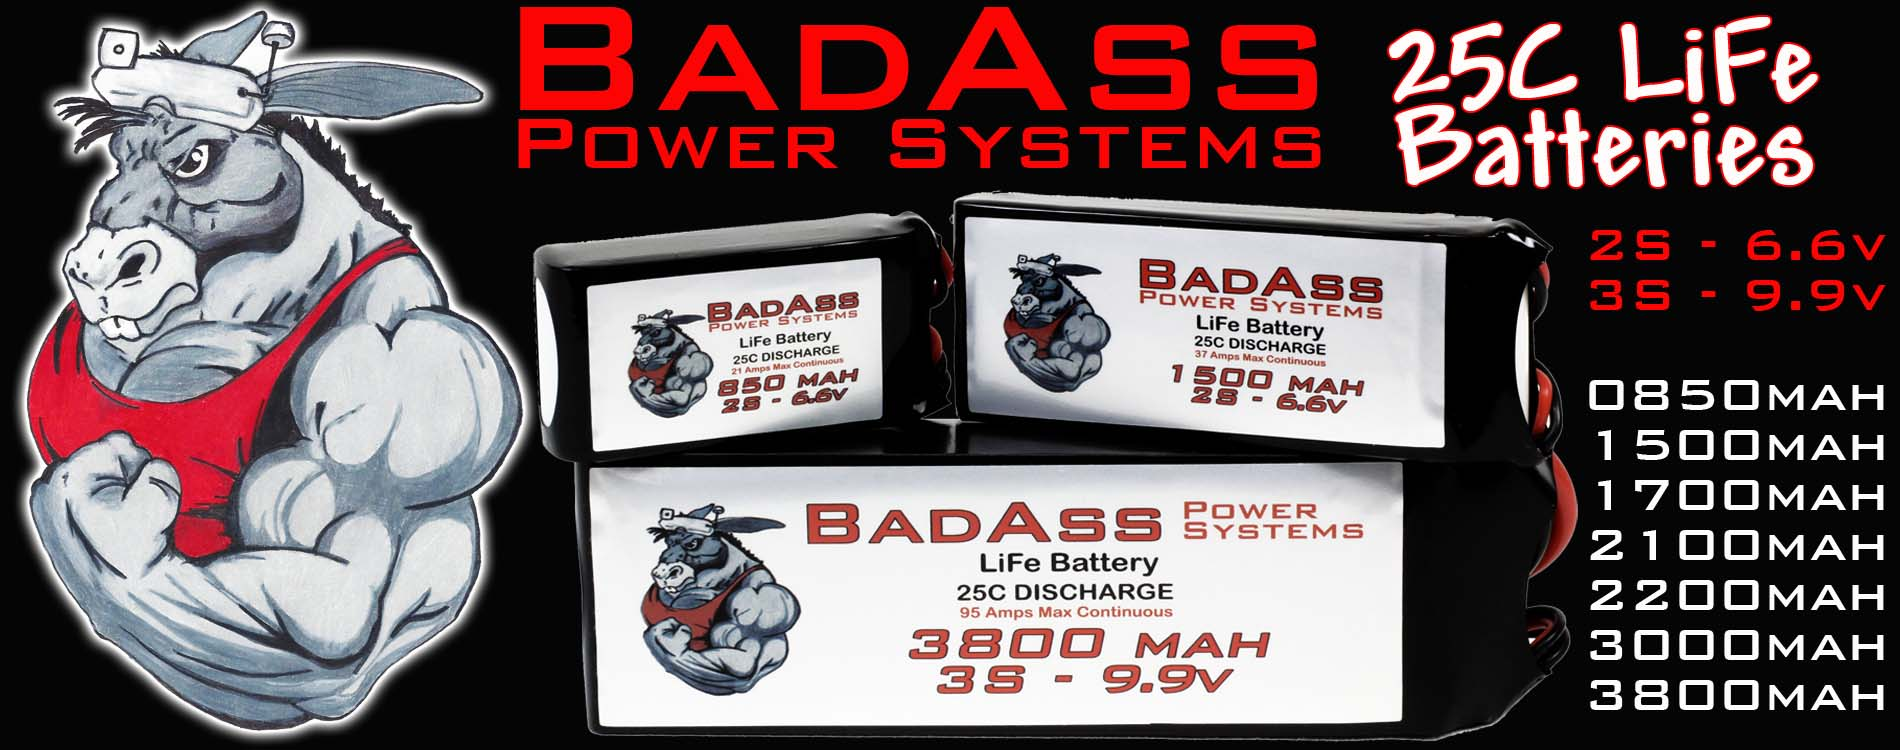 BadAss Life Batteries